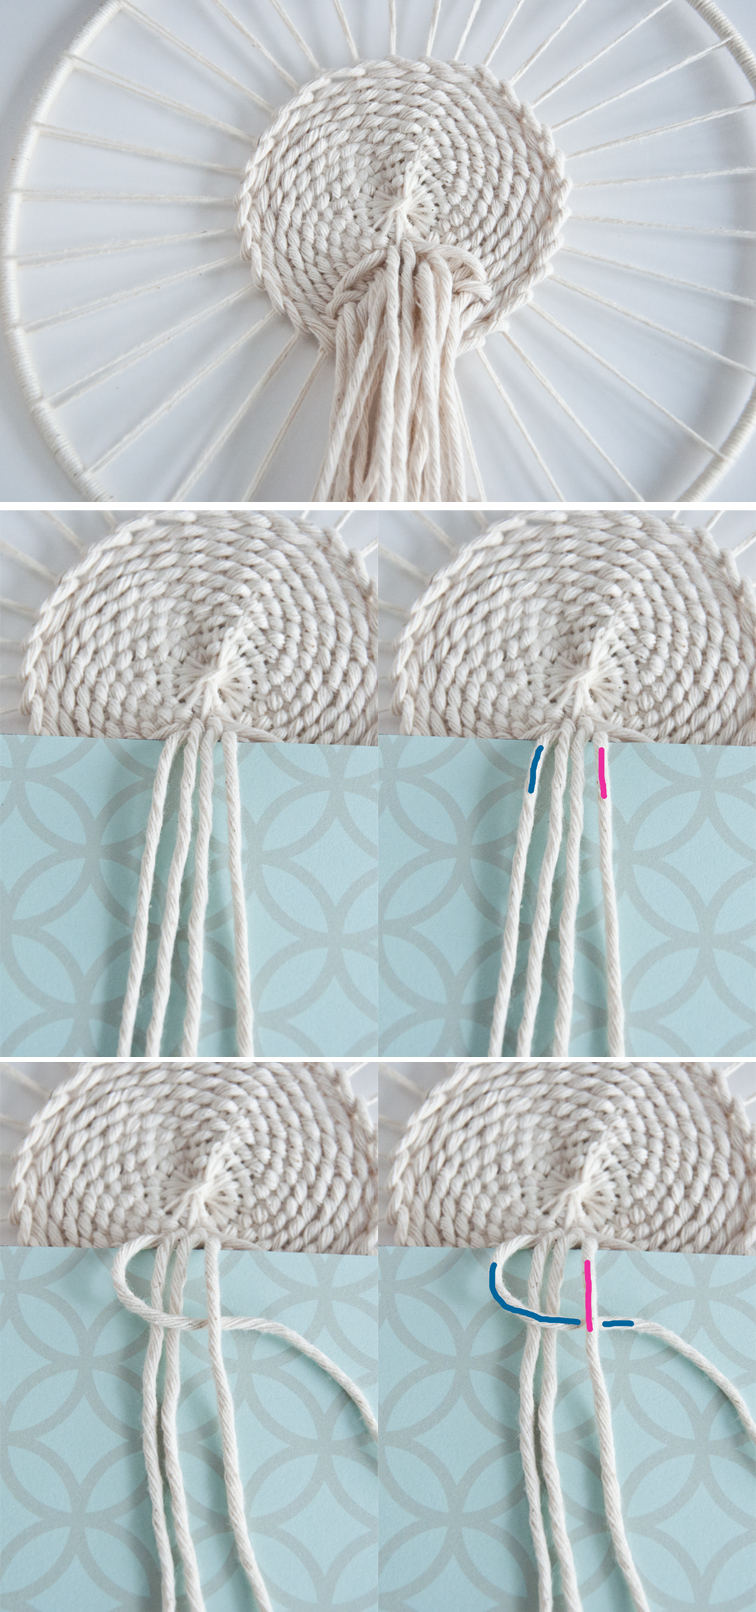 Weaving Technique Macrame Flair The Square Knot Loom Diagram How To Tie A